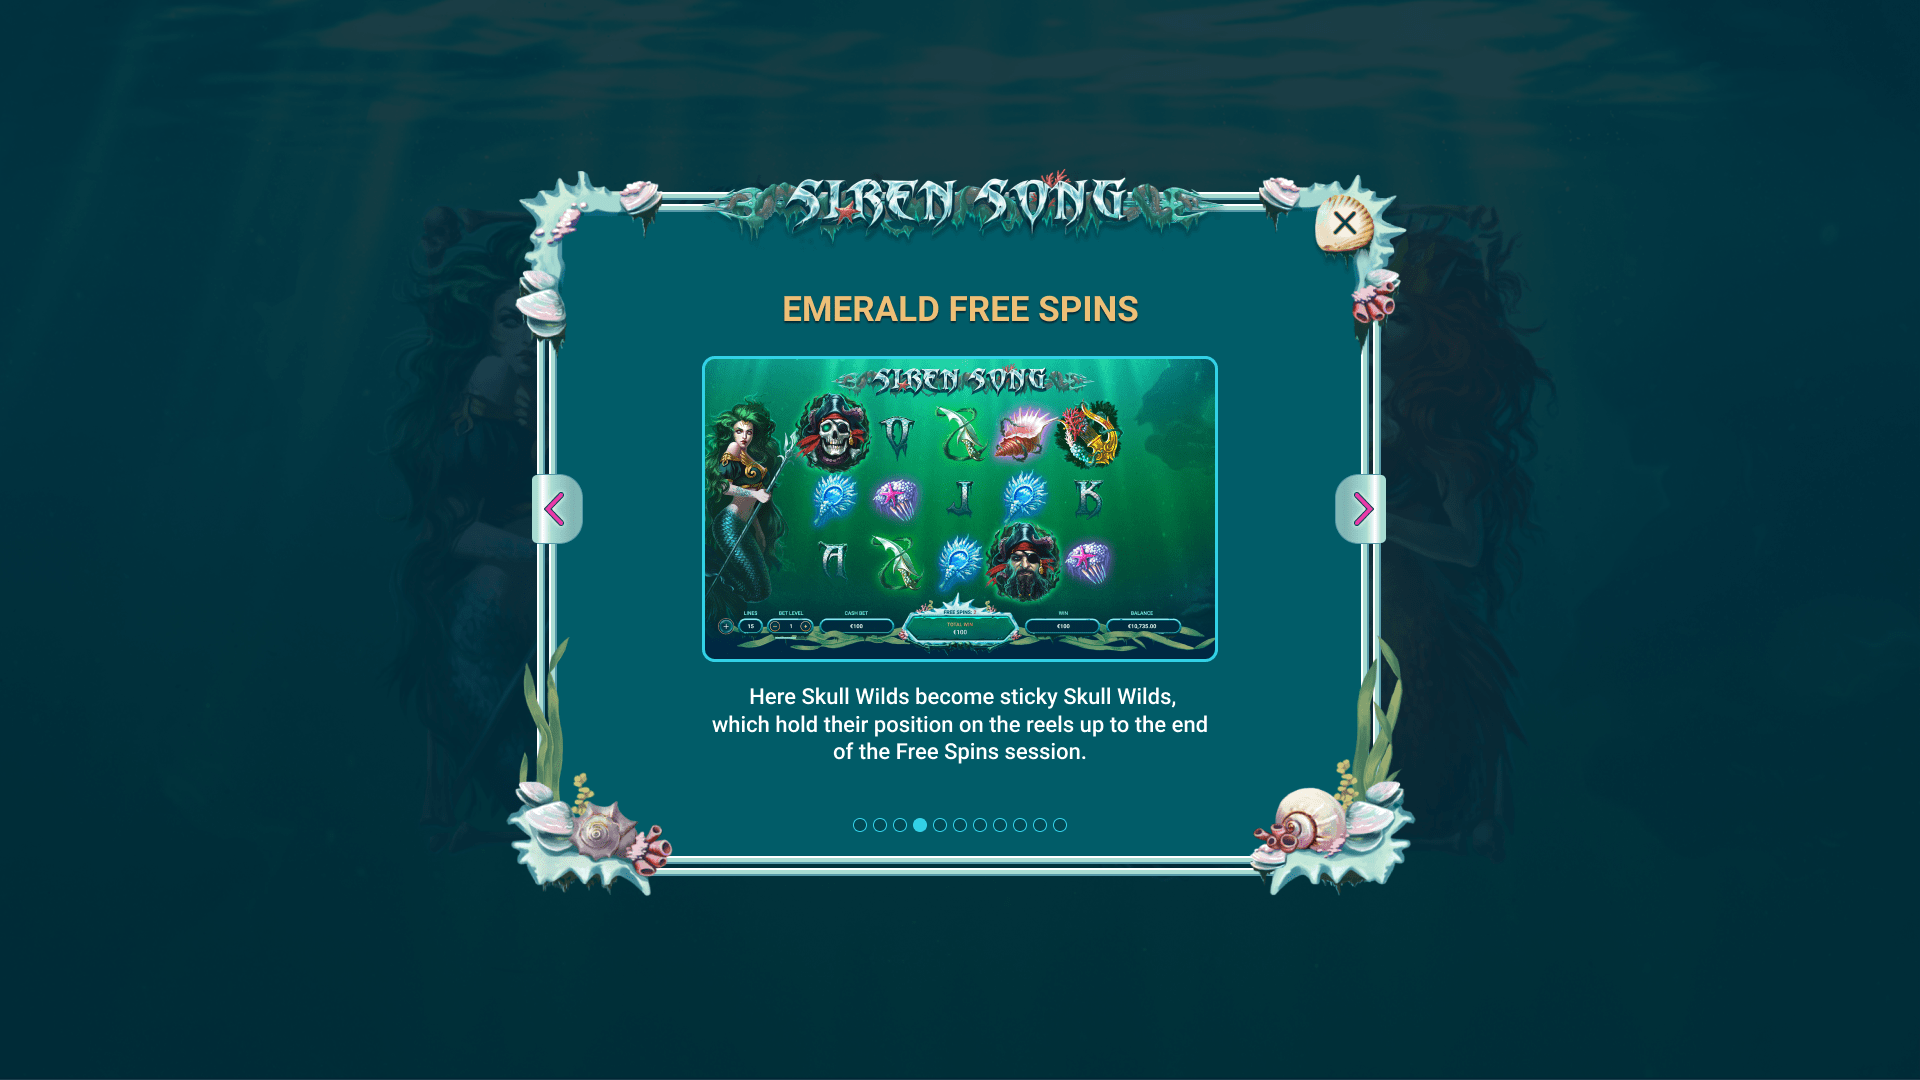 EMERALD FREE SPINS